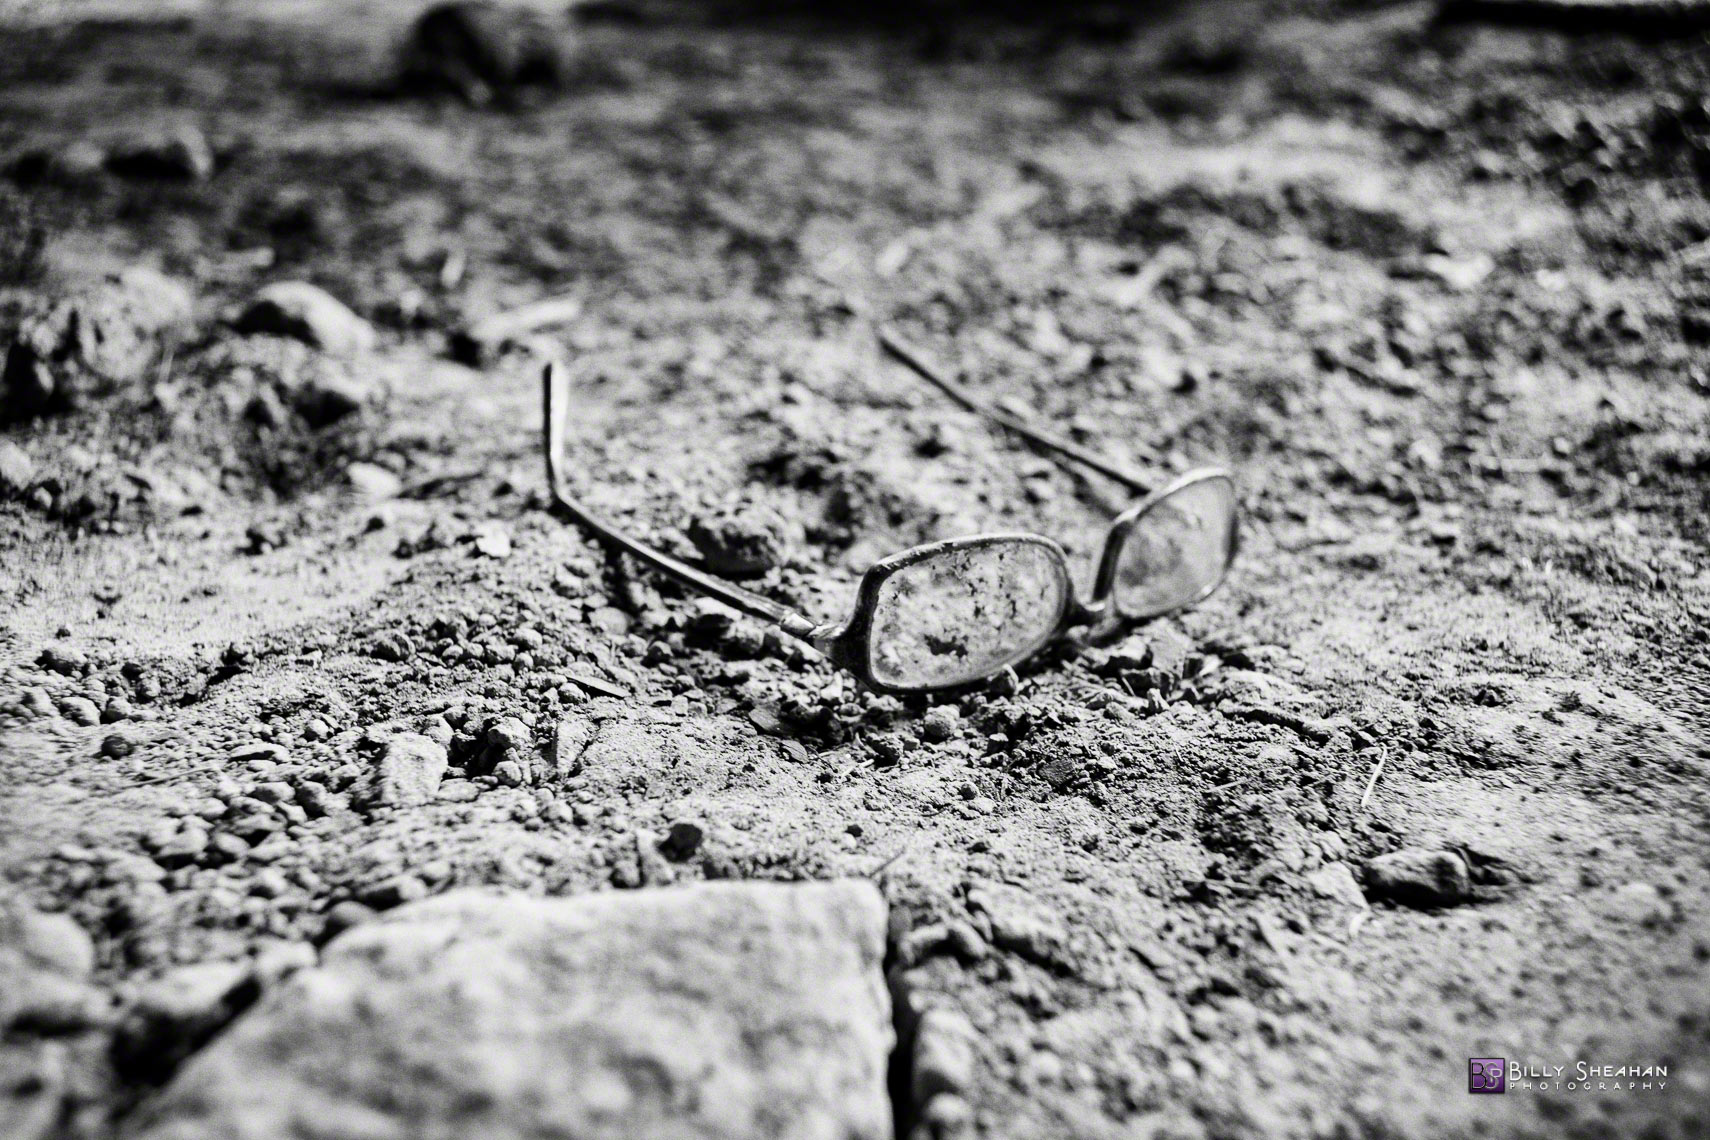 Eye_Glasses_New_Orleans_Lower_9th_Ward_NewOrleans_09Feb2009_0233_BW_D